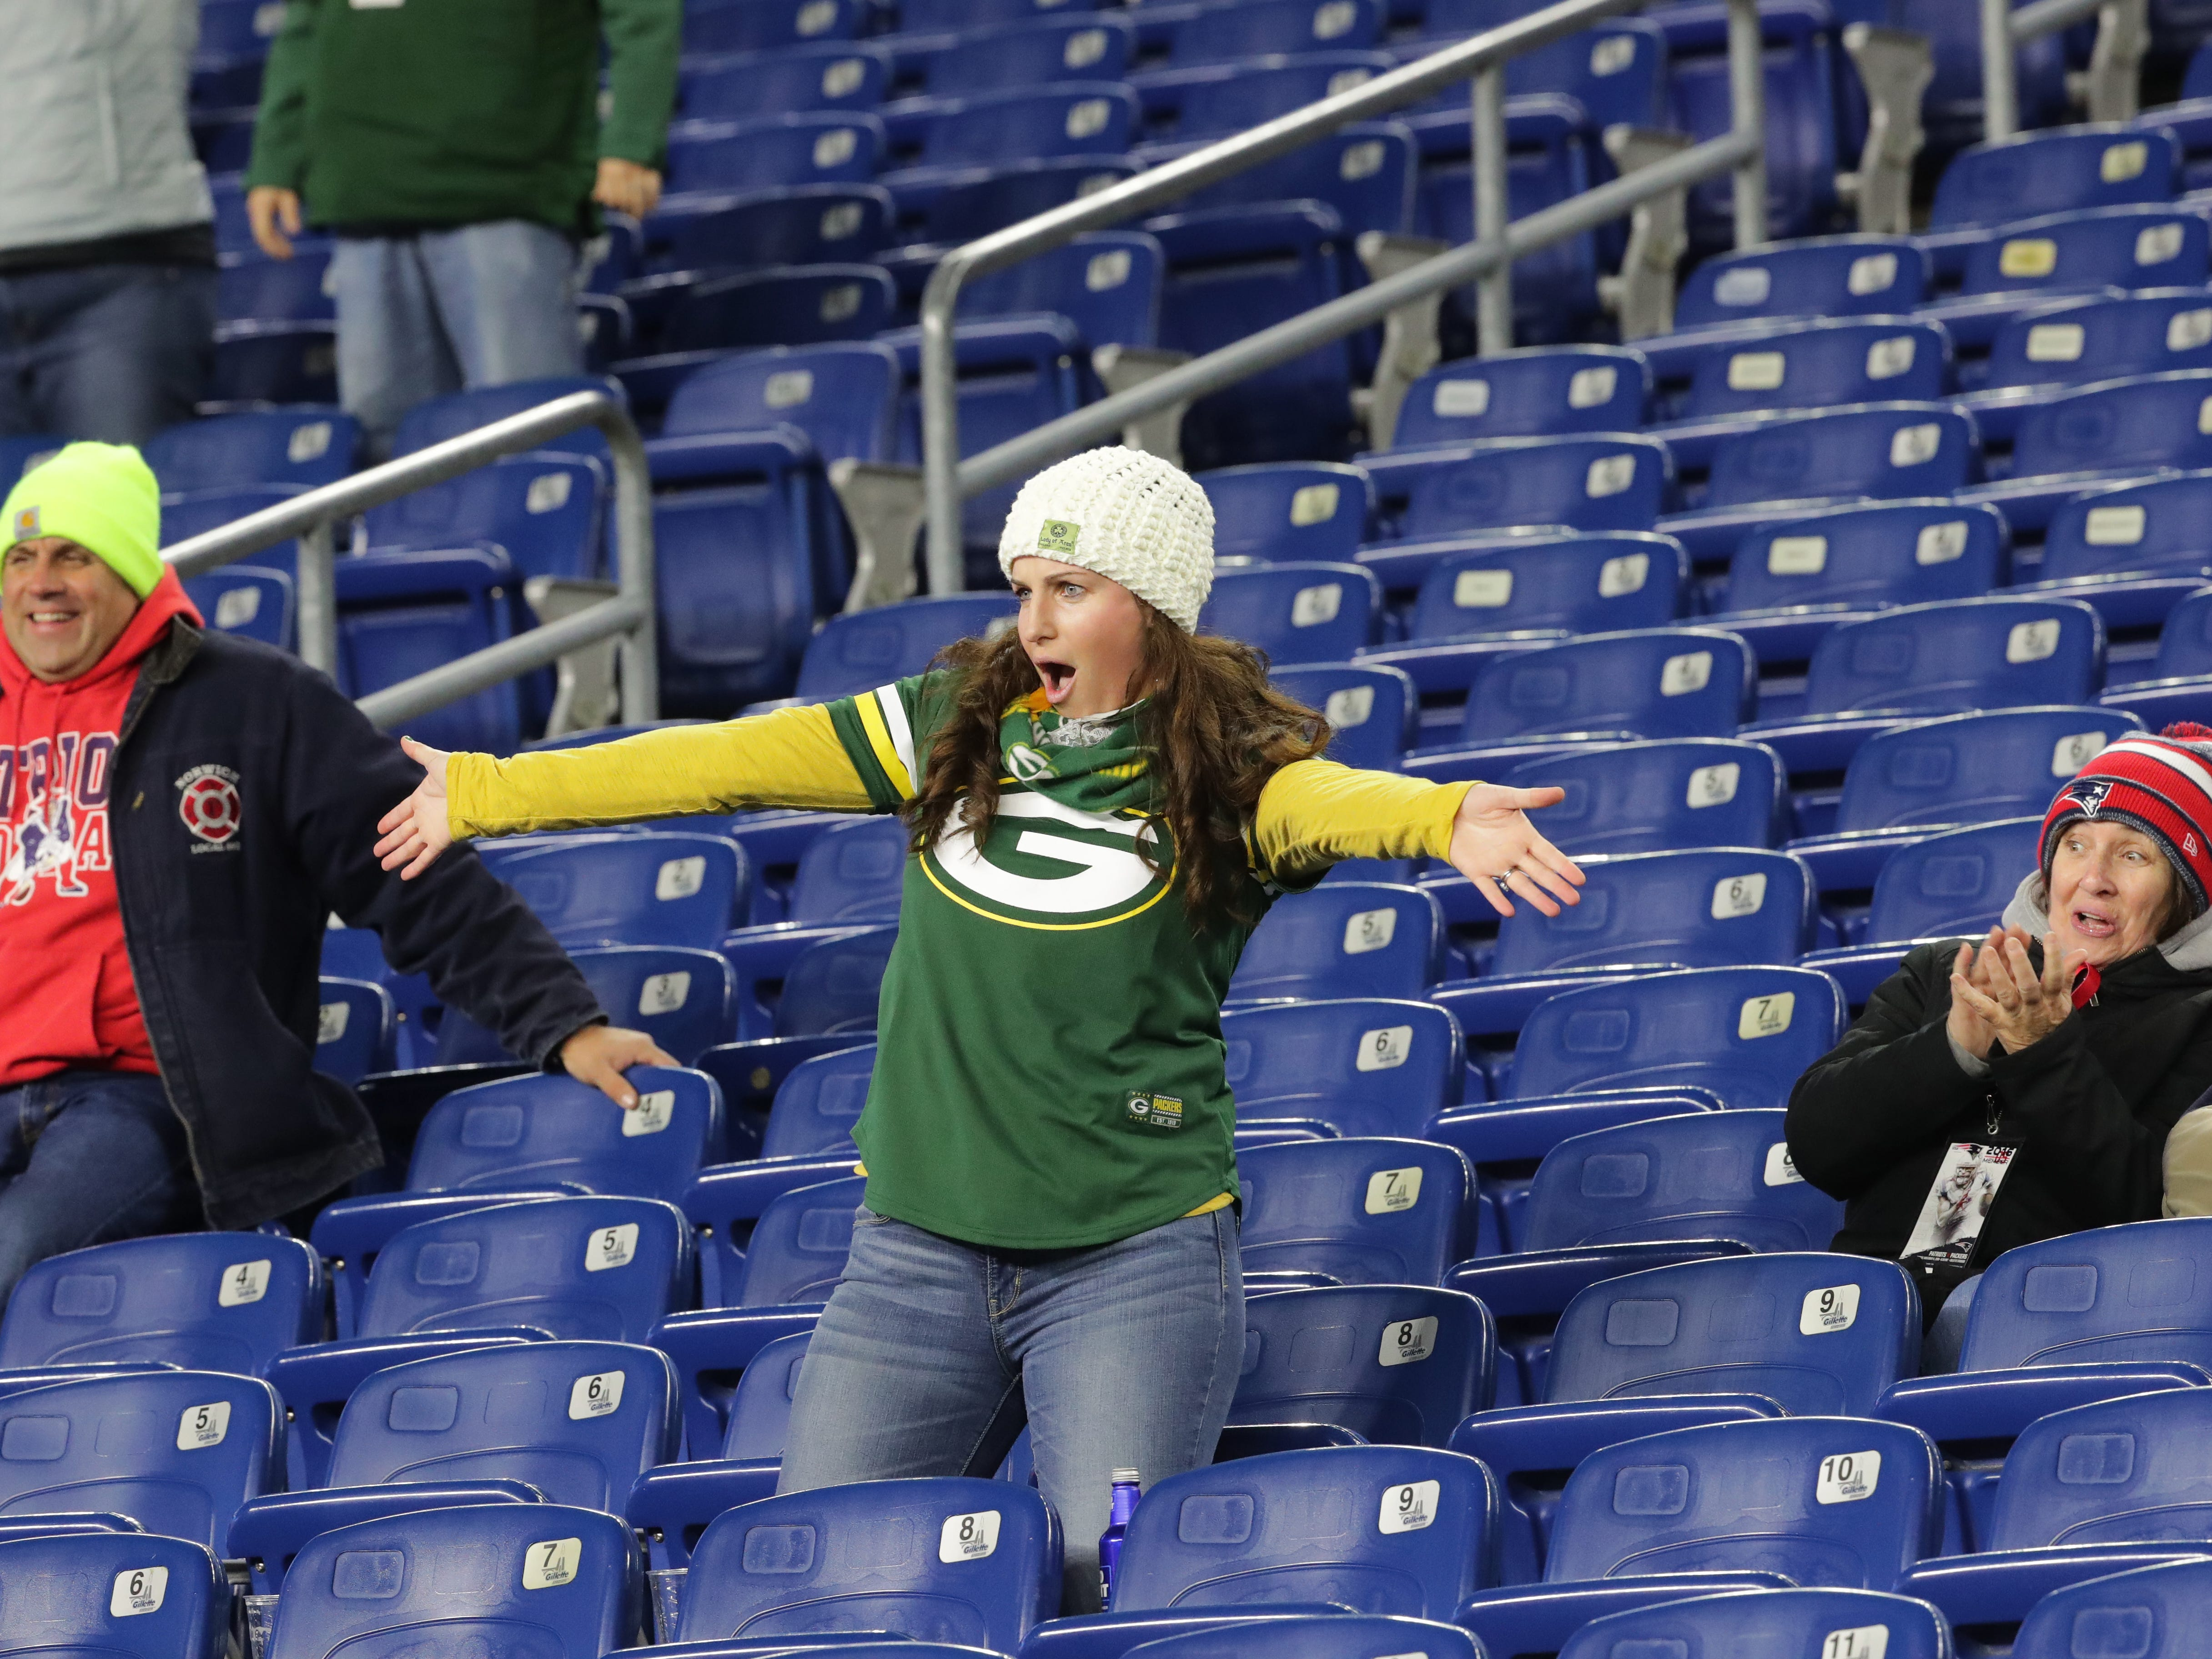 Samantha Winfrey reacts after throwing a football back Green Bay Packers running back Jamaal Williams before their game against the New England Patriots Sunday, November 4, 2018 at Gillette Stadium in Foxborough, Mass. She is from Westerly, R.I.